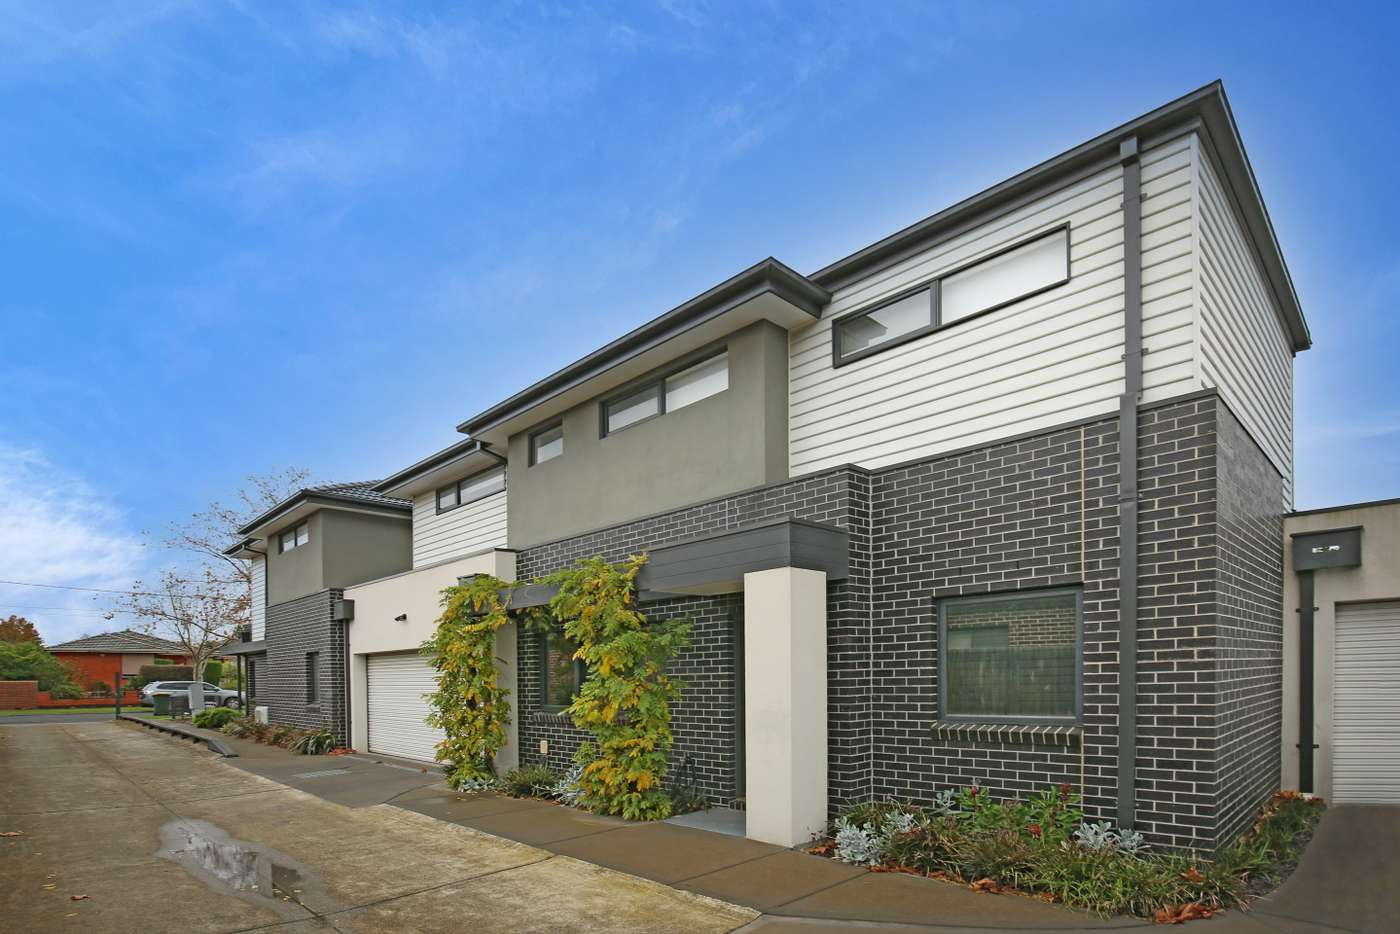 Main view of Homely townhouse listing, 2/89 Crookston Road, Reservoir VIC 3073